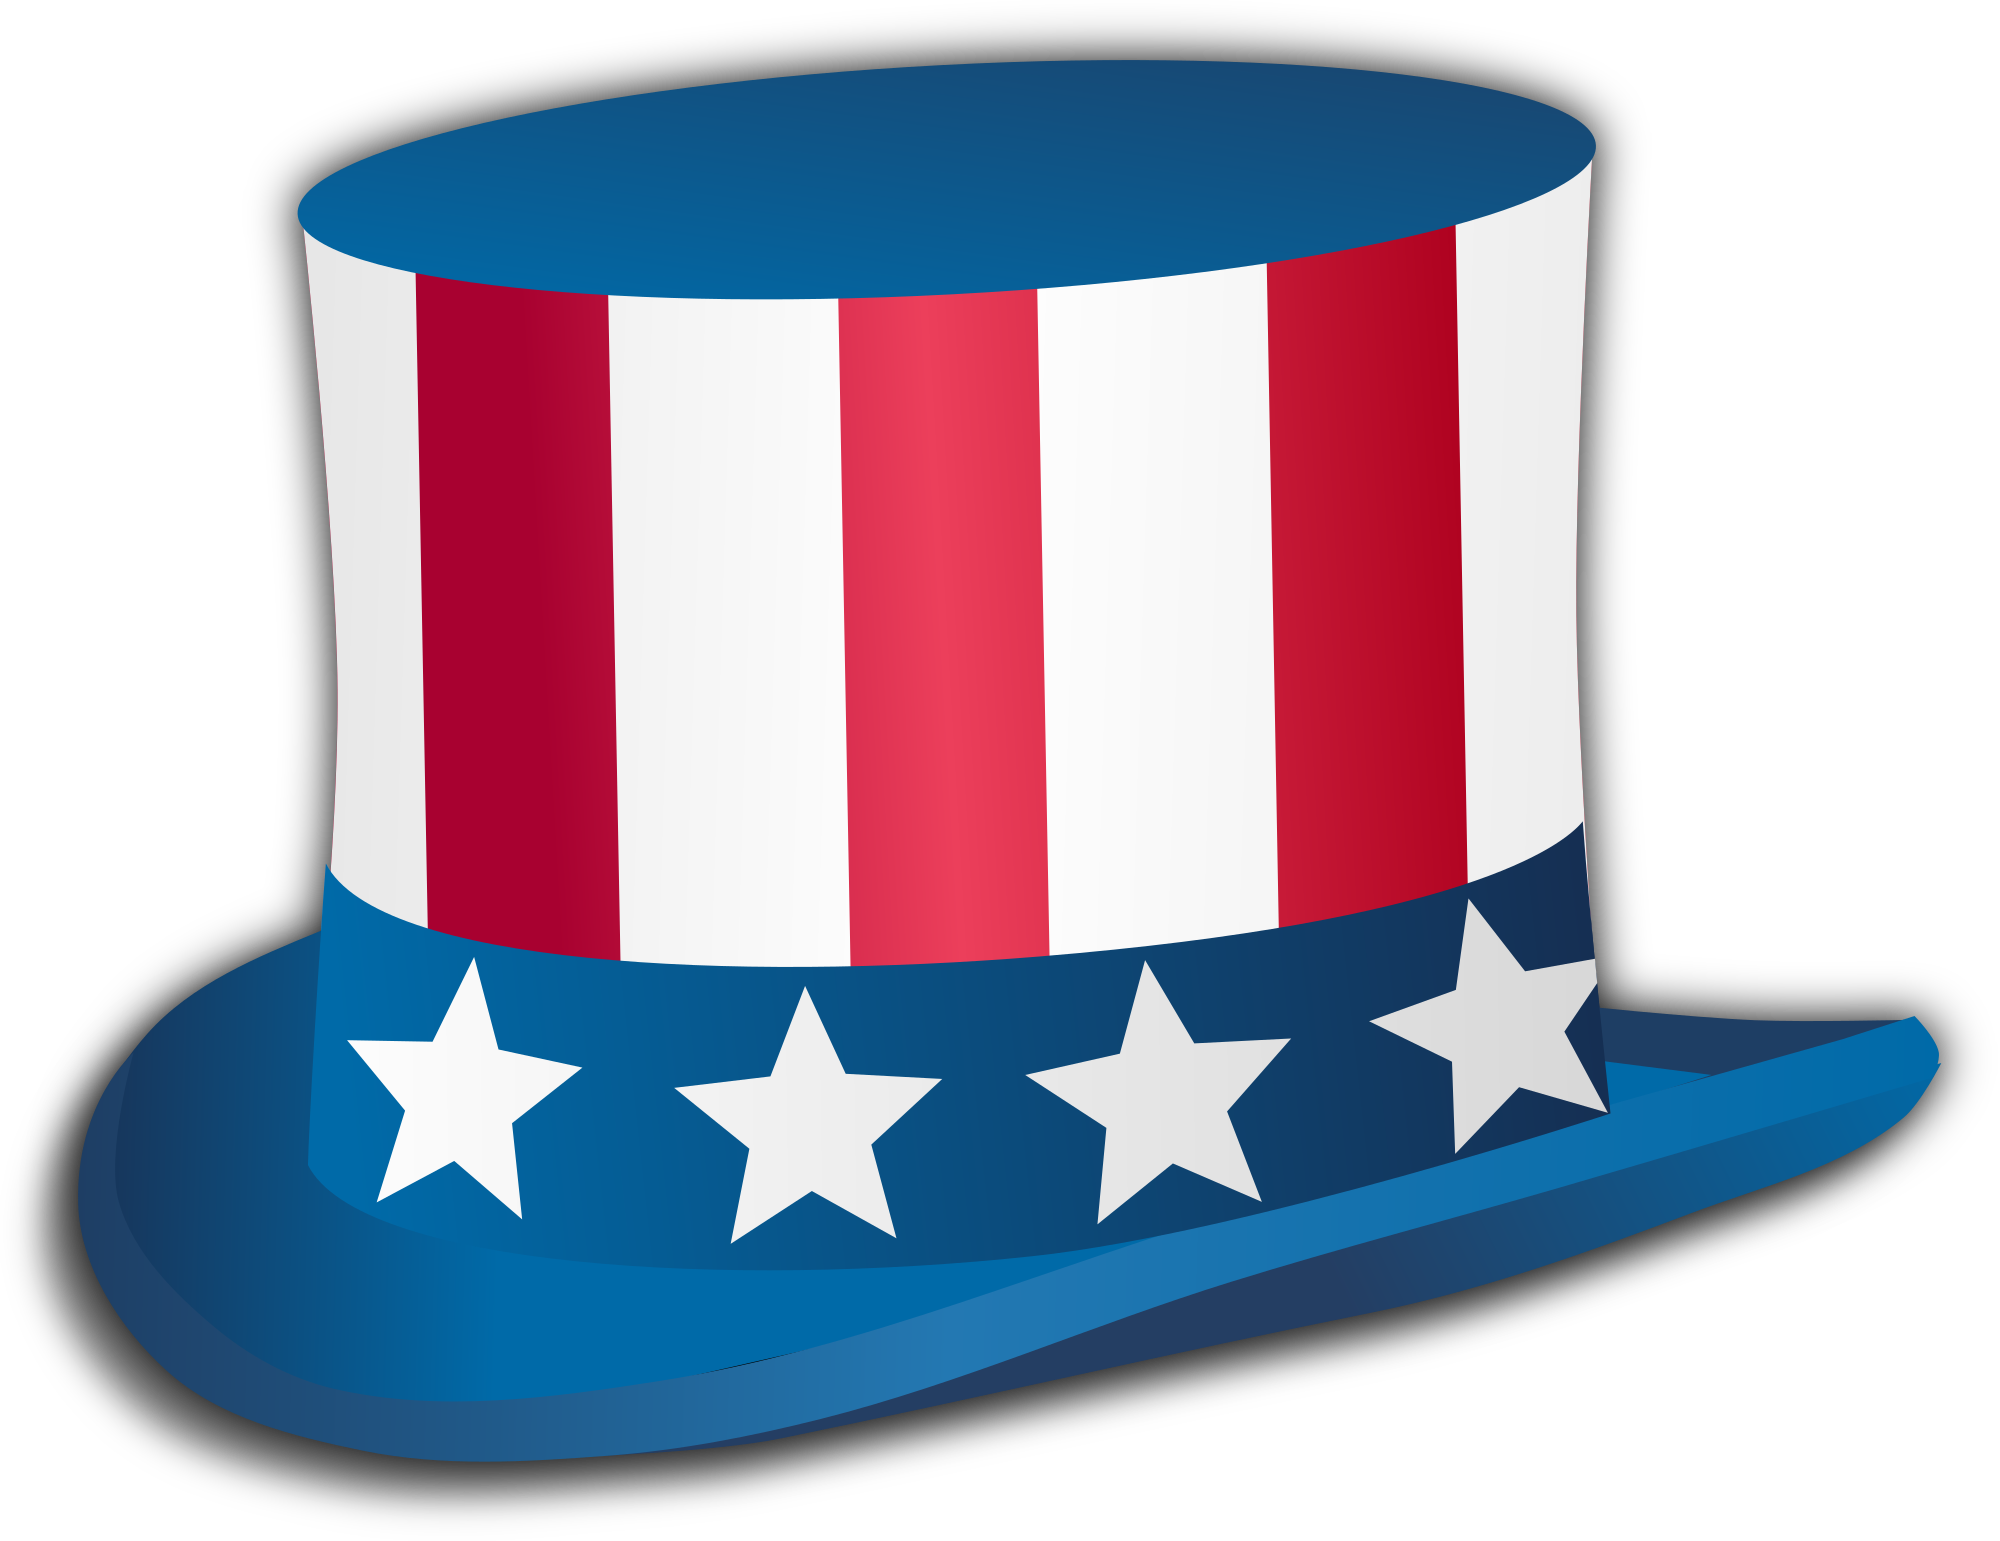 Free clipart uncle sam taking money clip art library File:Uncle Sam hat.svg - Wikimedia Commons clip art library